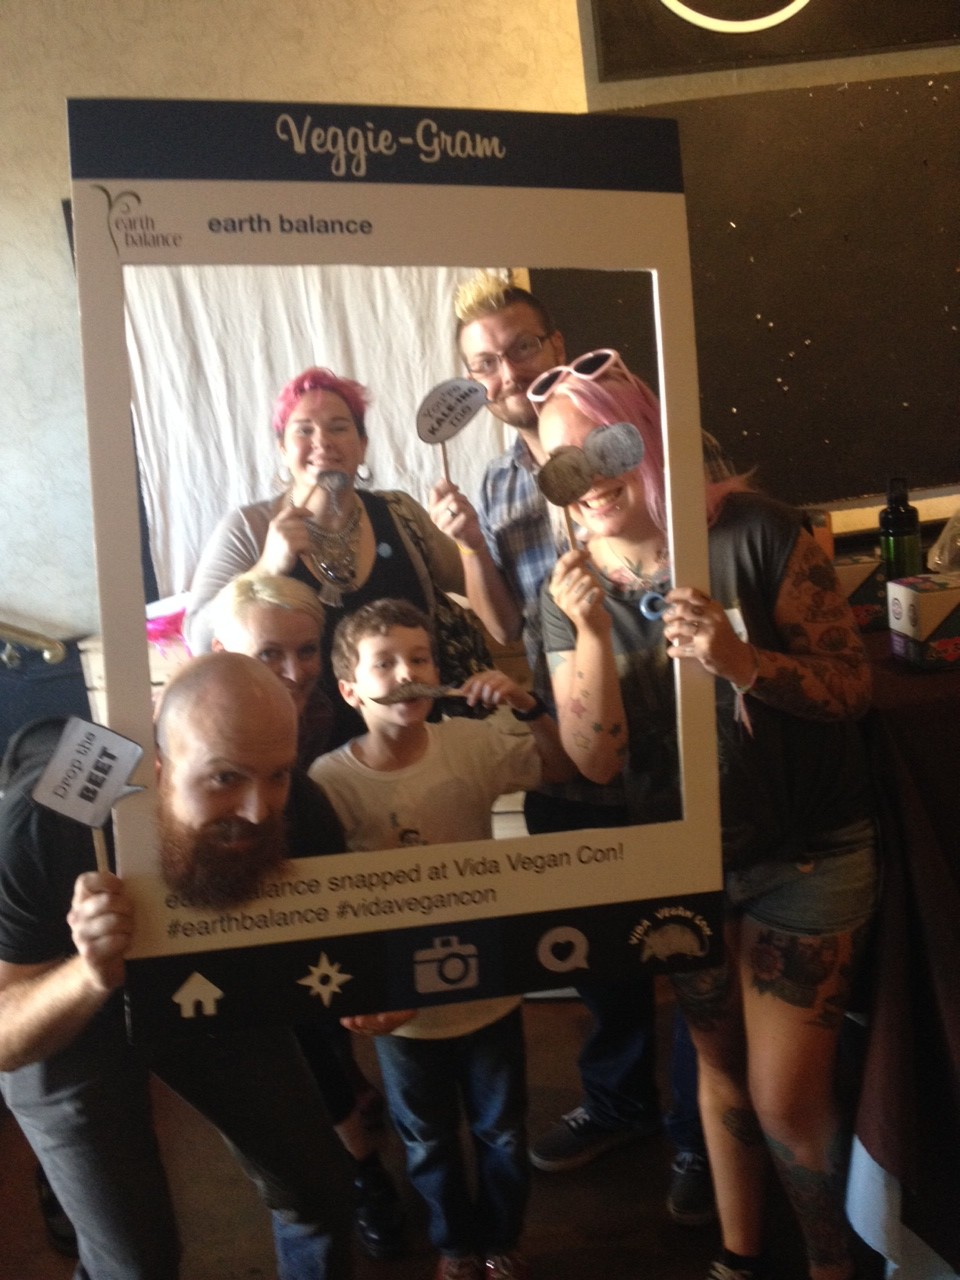 720f88ed7 Photo booth fun! Oh noes! I forgot to upload this one yesterday! What fun!  So many great vegans in one pic -- even celeb Milo! (Submitted by Amey)